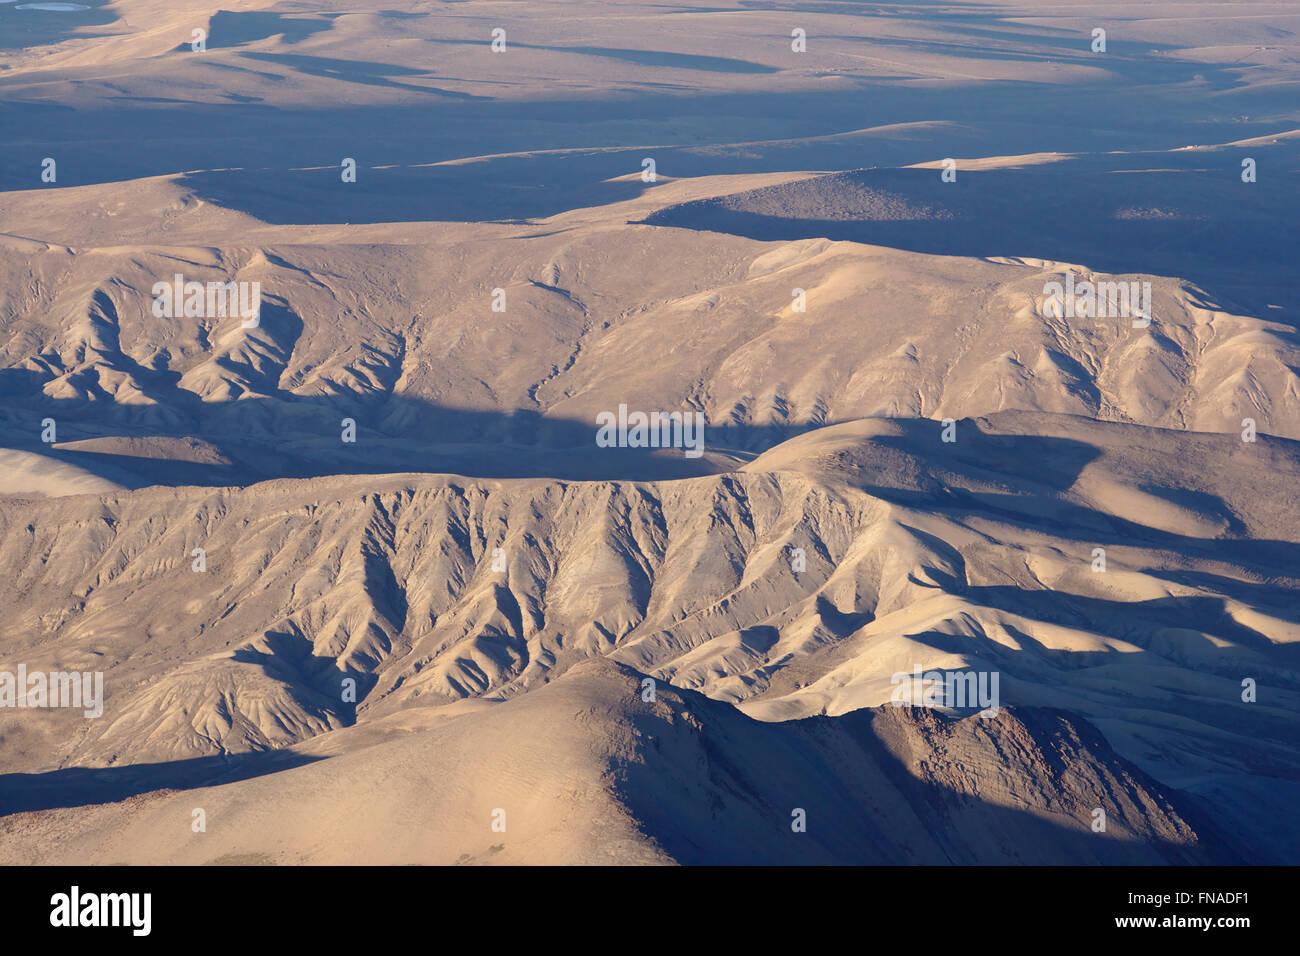 View from Huayna Potosi over the Altiplano - Stock Image